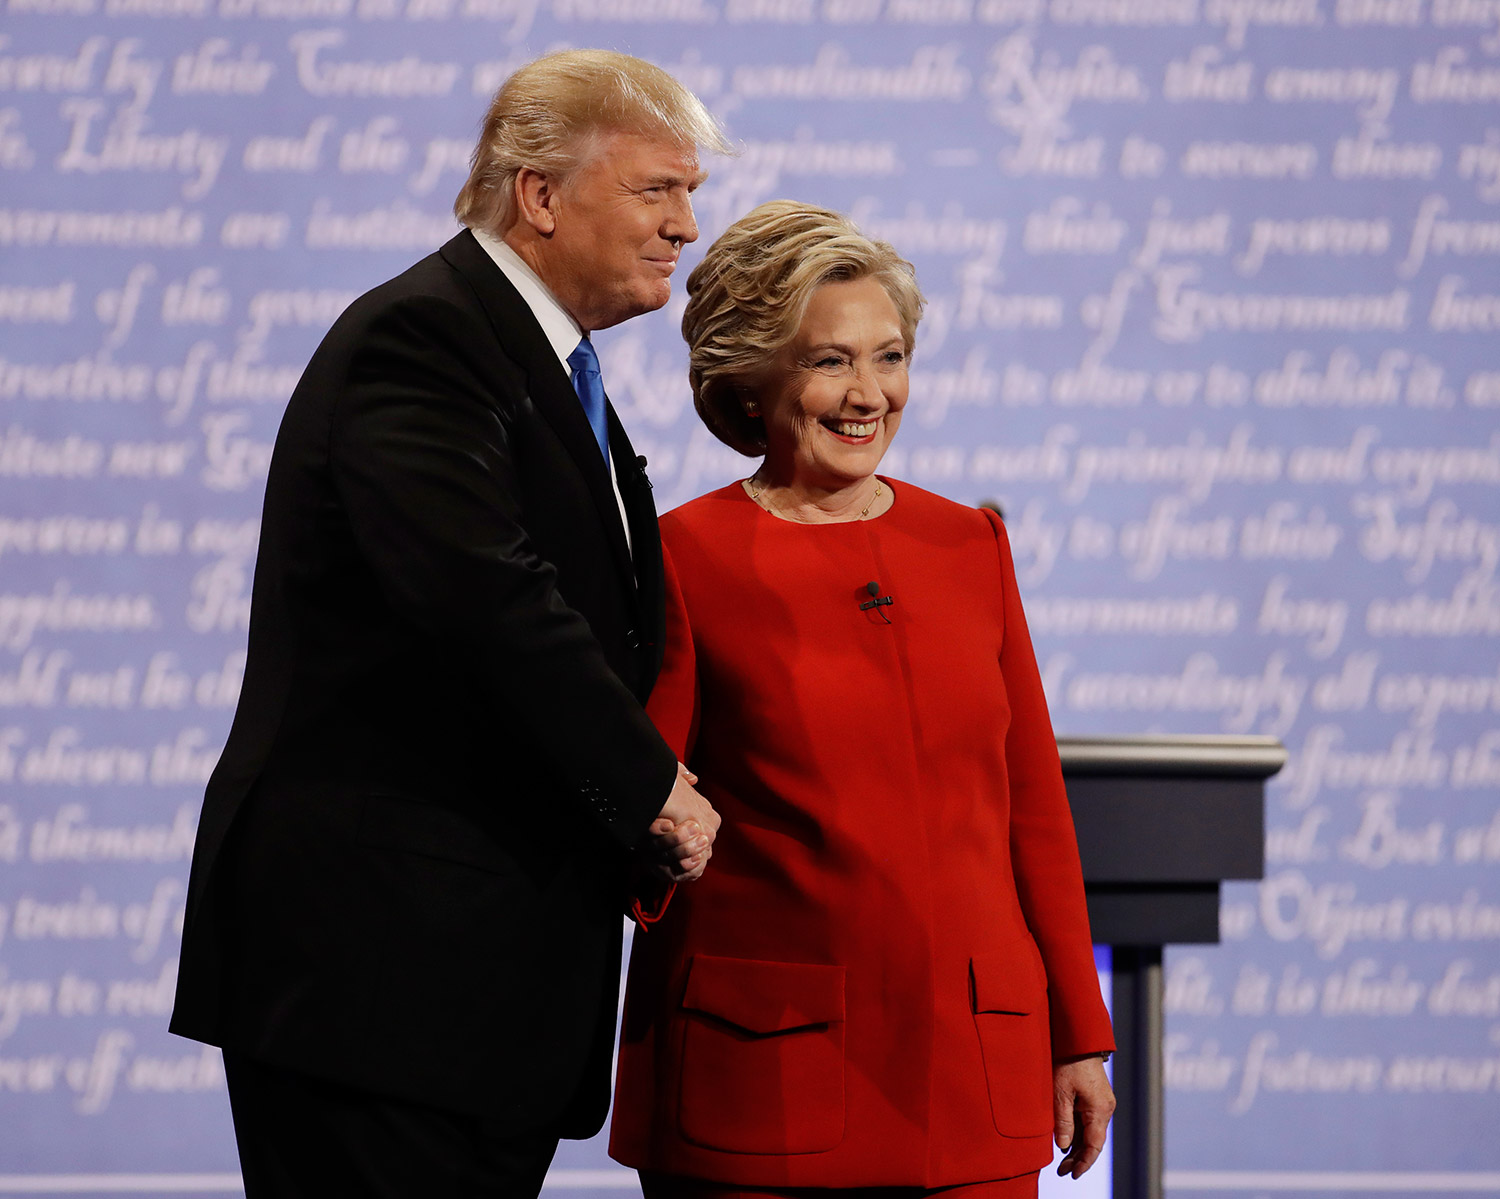 Hillary Clinton and Donald Trump shake hands before Monday night's presidential debate at Hofstra University in Hempstead, N.Y.